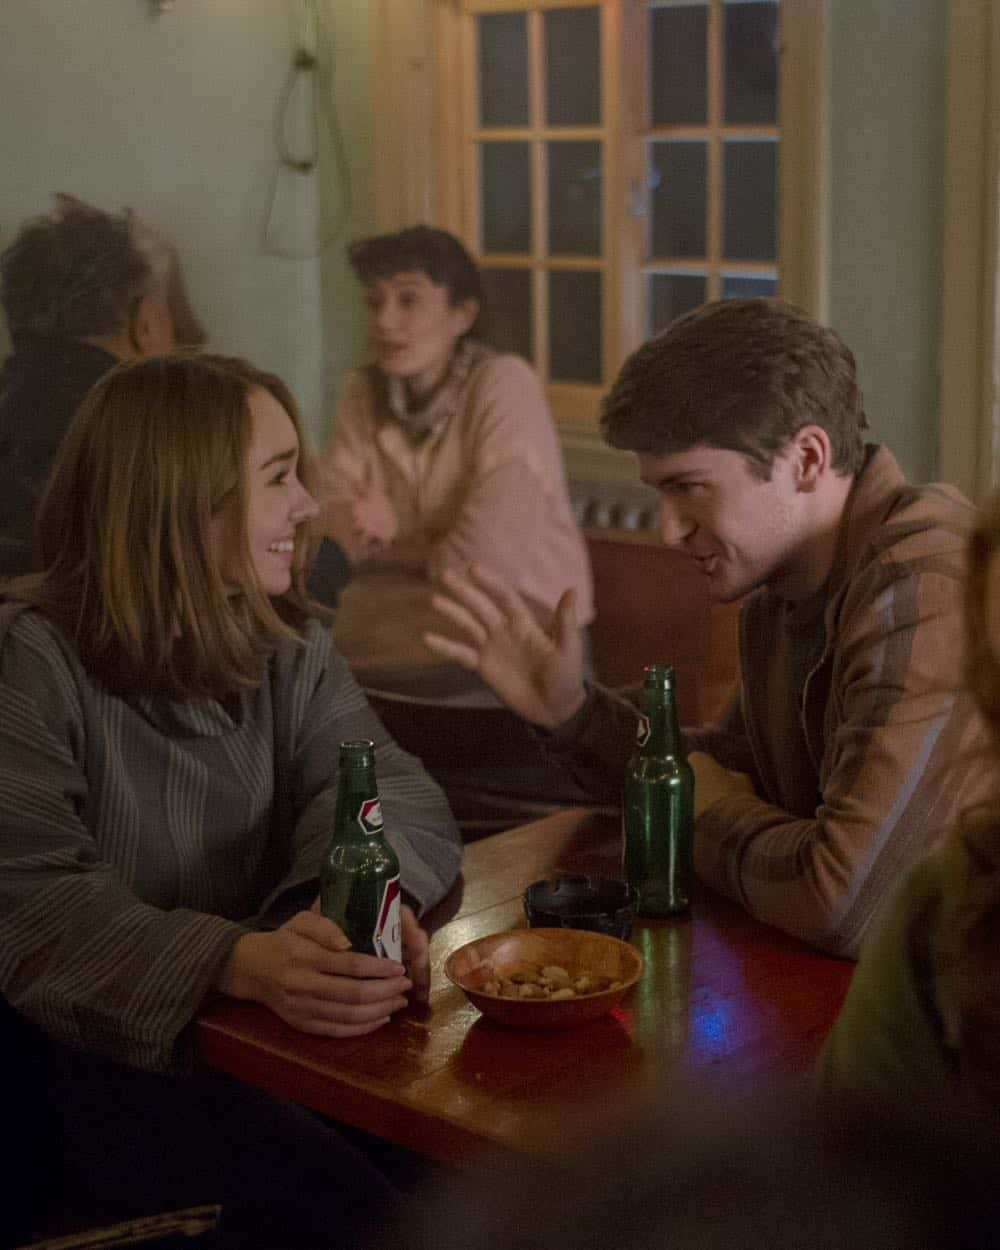 """THE AMERICANS -- """"The Great Patriotic War"""" -- Season 6, Episode 5 (Airs Wednesday, April 25, 10:00 pm/ep) -- Pictured: Holly Taylor as Paige Jennings, Colton Ryan as Vince. CR: Jeffrey Neira/FX"""